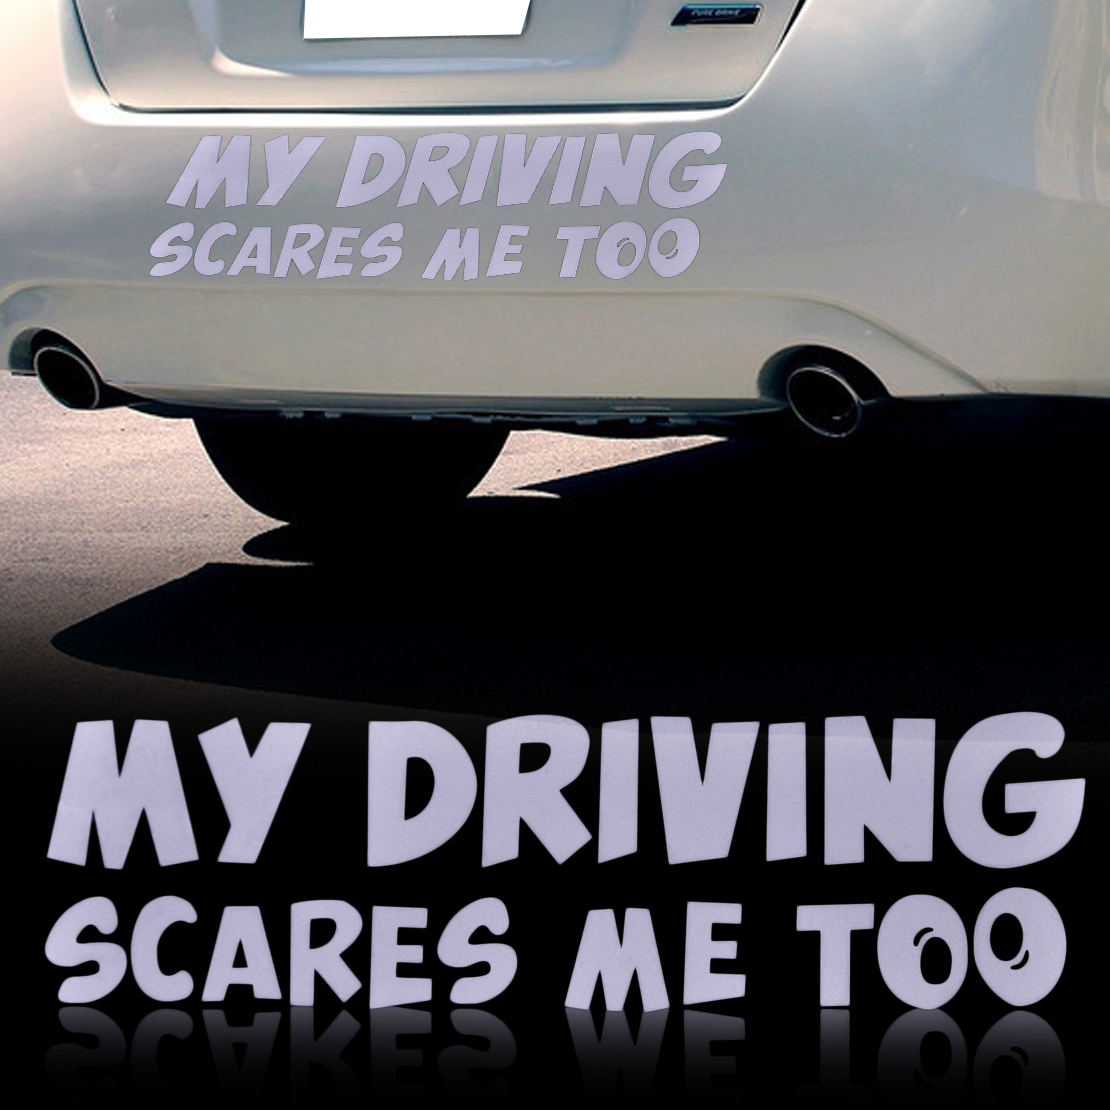 Toyota car sticker design - Car Stickers My Driving Scares Me Too Window Bumper Van Custom Funny Vinyl Sticker Decals For Mercedes Toyota Nissan Vw Audi